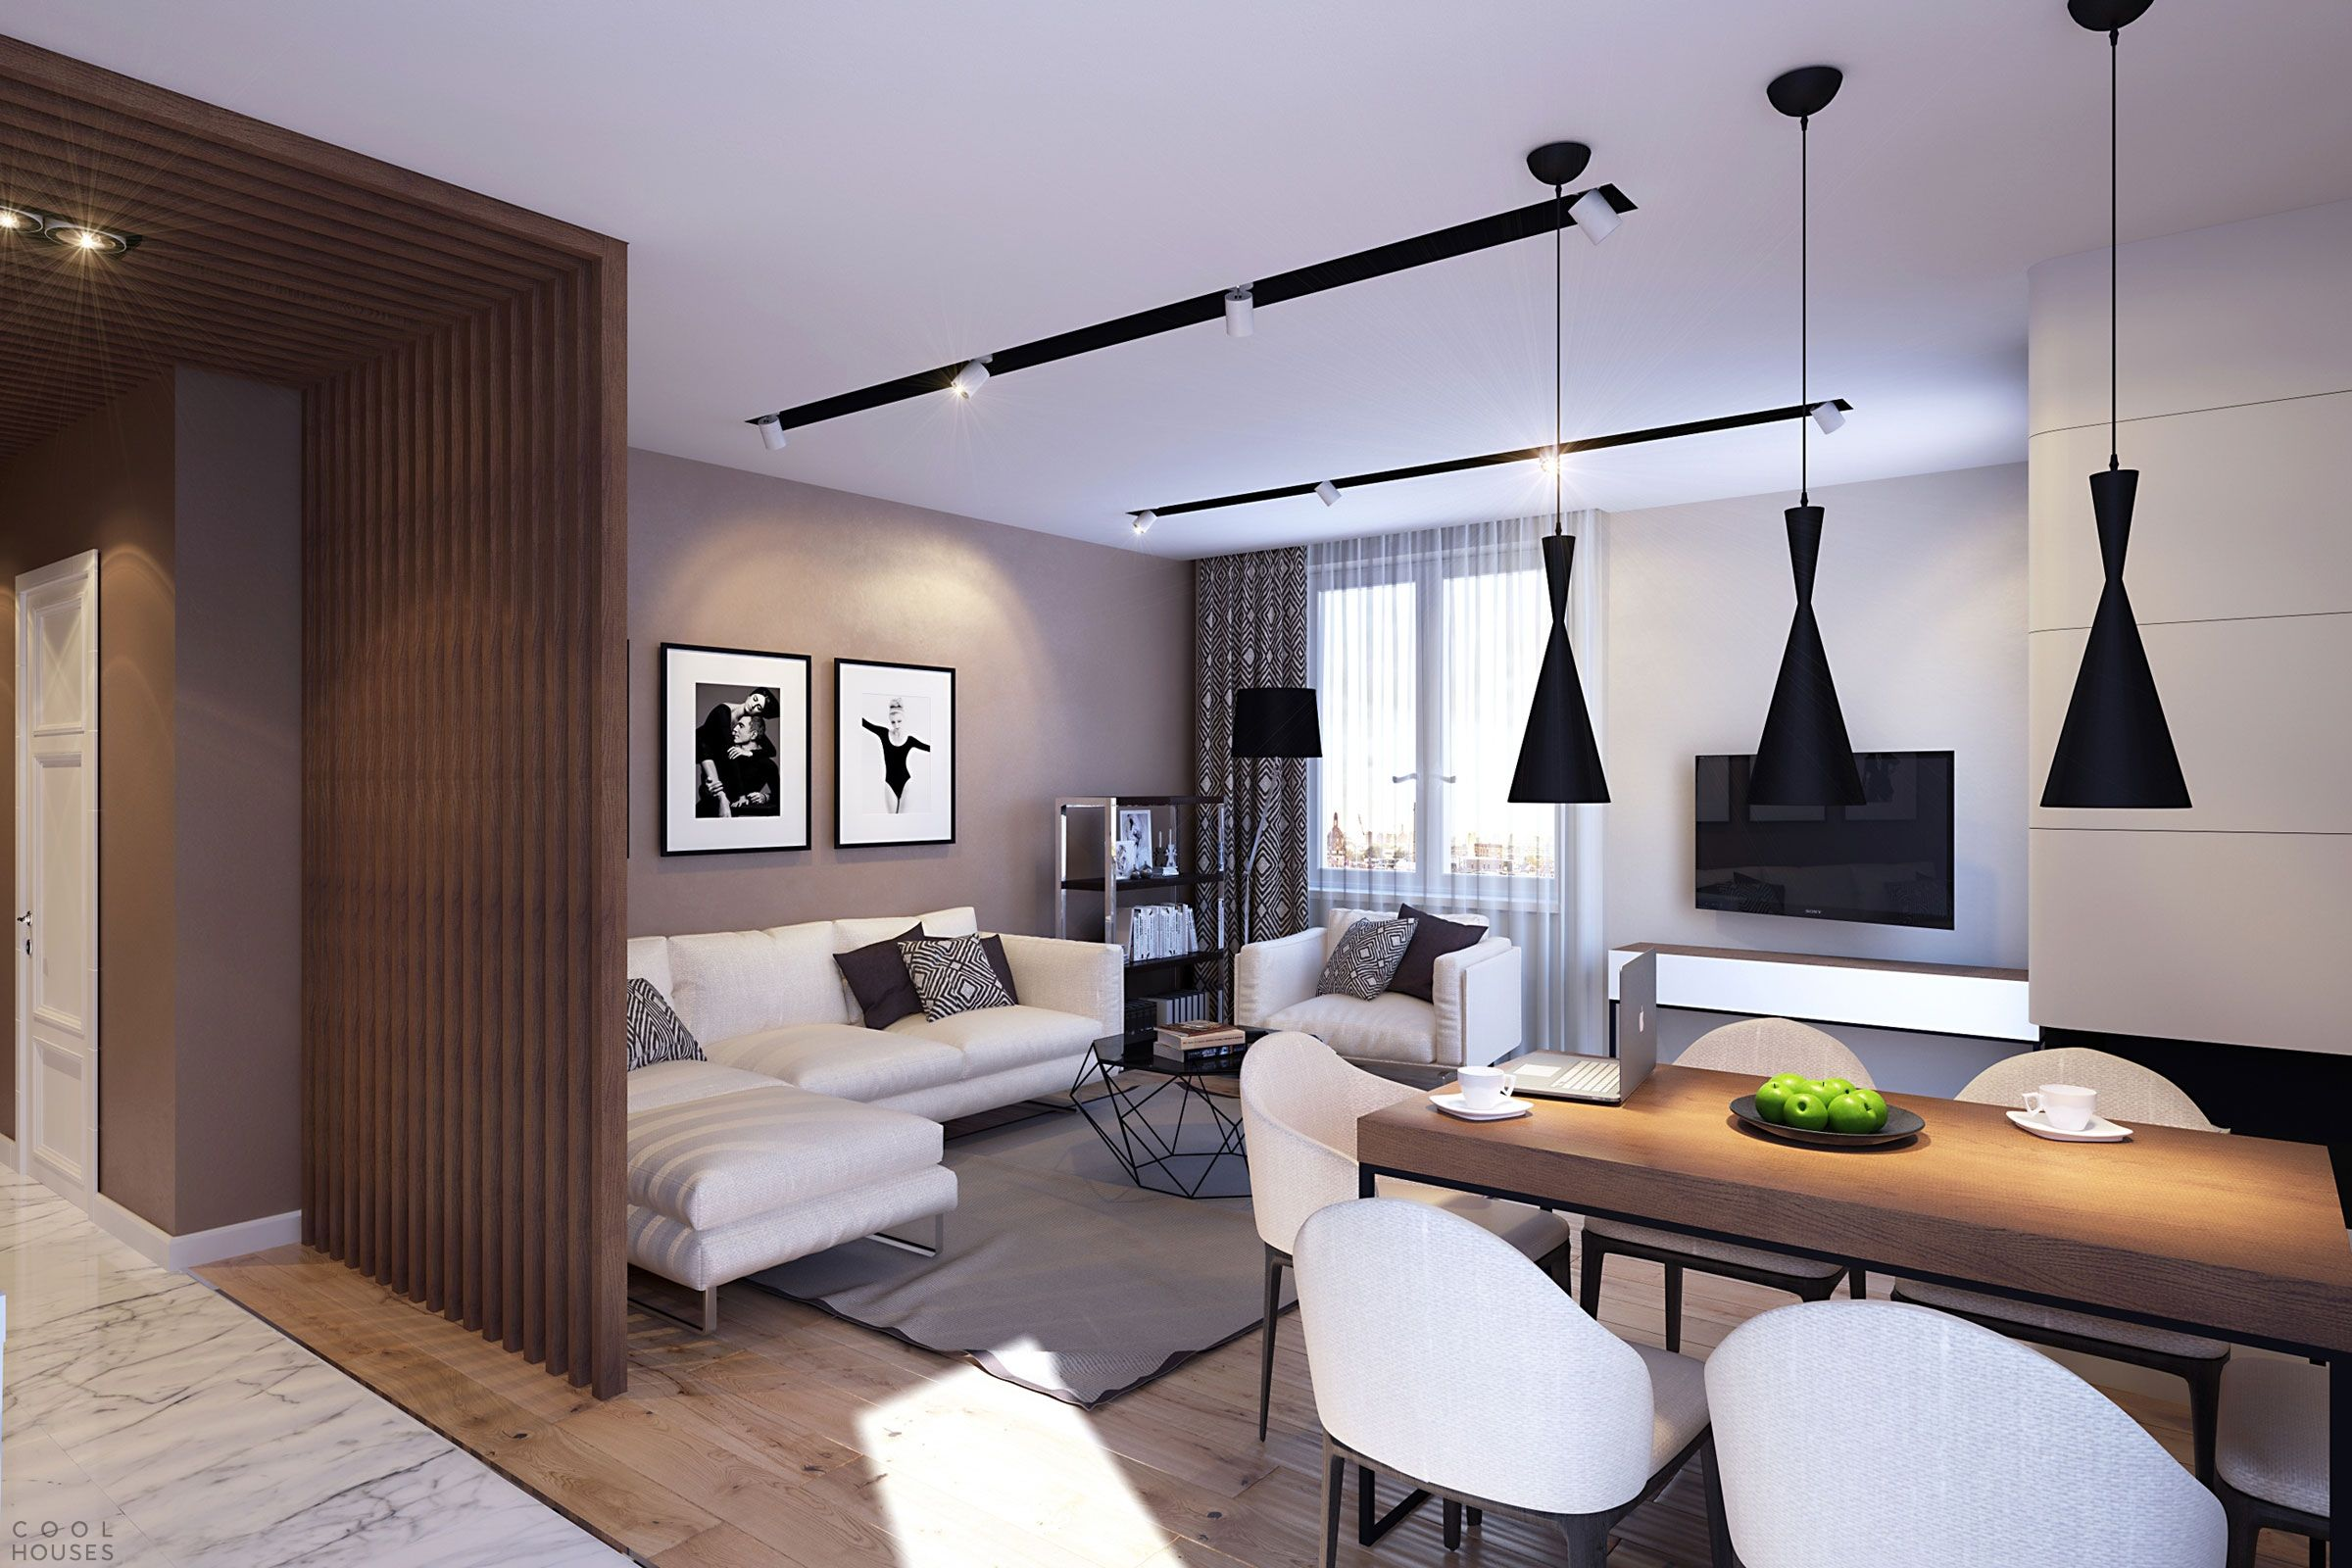 salon comedor decorado | Interiores#pintura | Apartment design ...